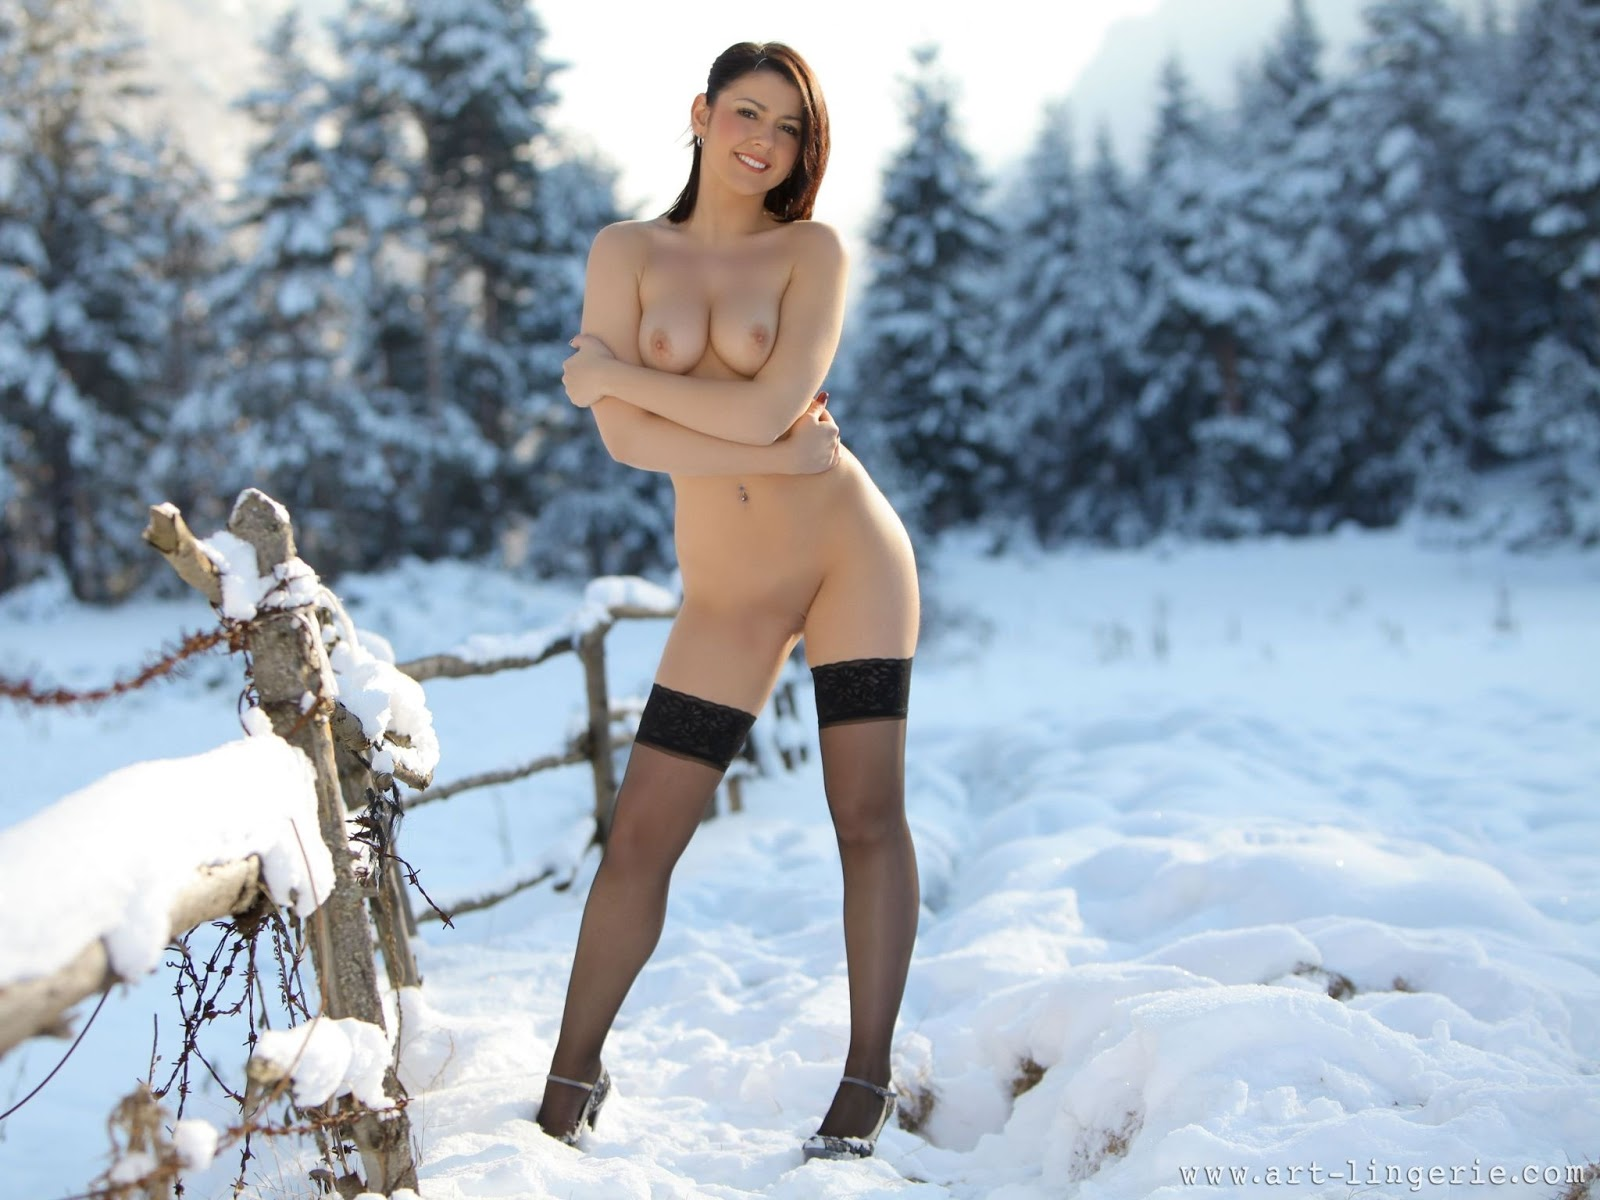 Naked Women In The Winter Snow Nude